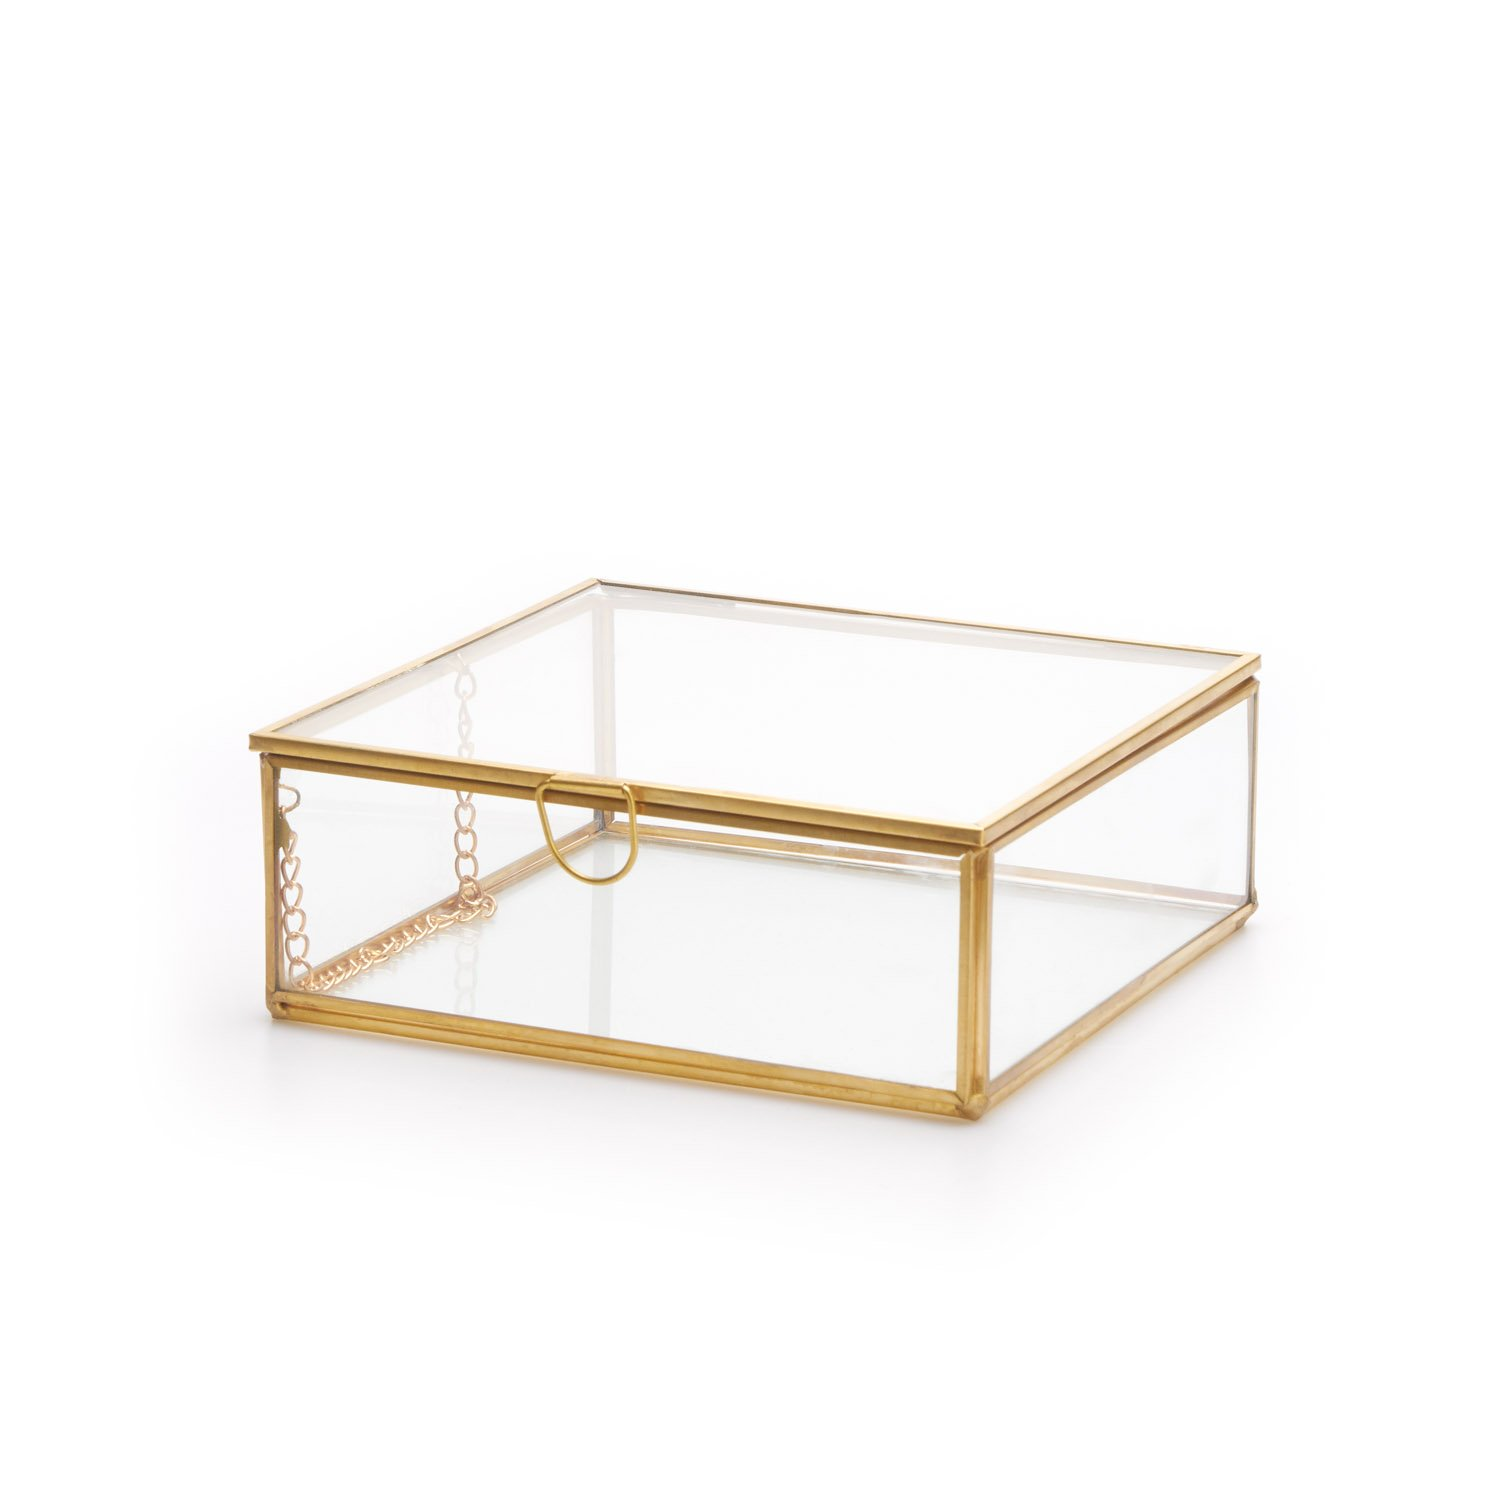 Black Velvet Studio Deco box Retro Transparent And Golden Aged colour decorative box with retro air to use as jewelry or small items Glass/brass 5 x 13 x 13 cm Black Velvet Studio S.L.U.